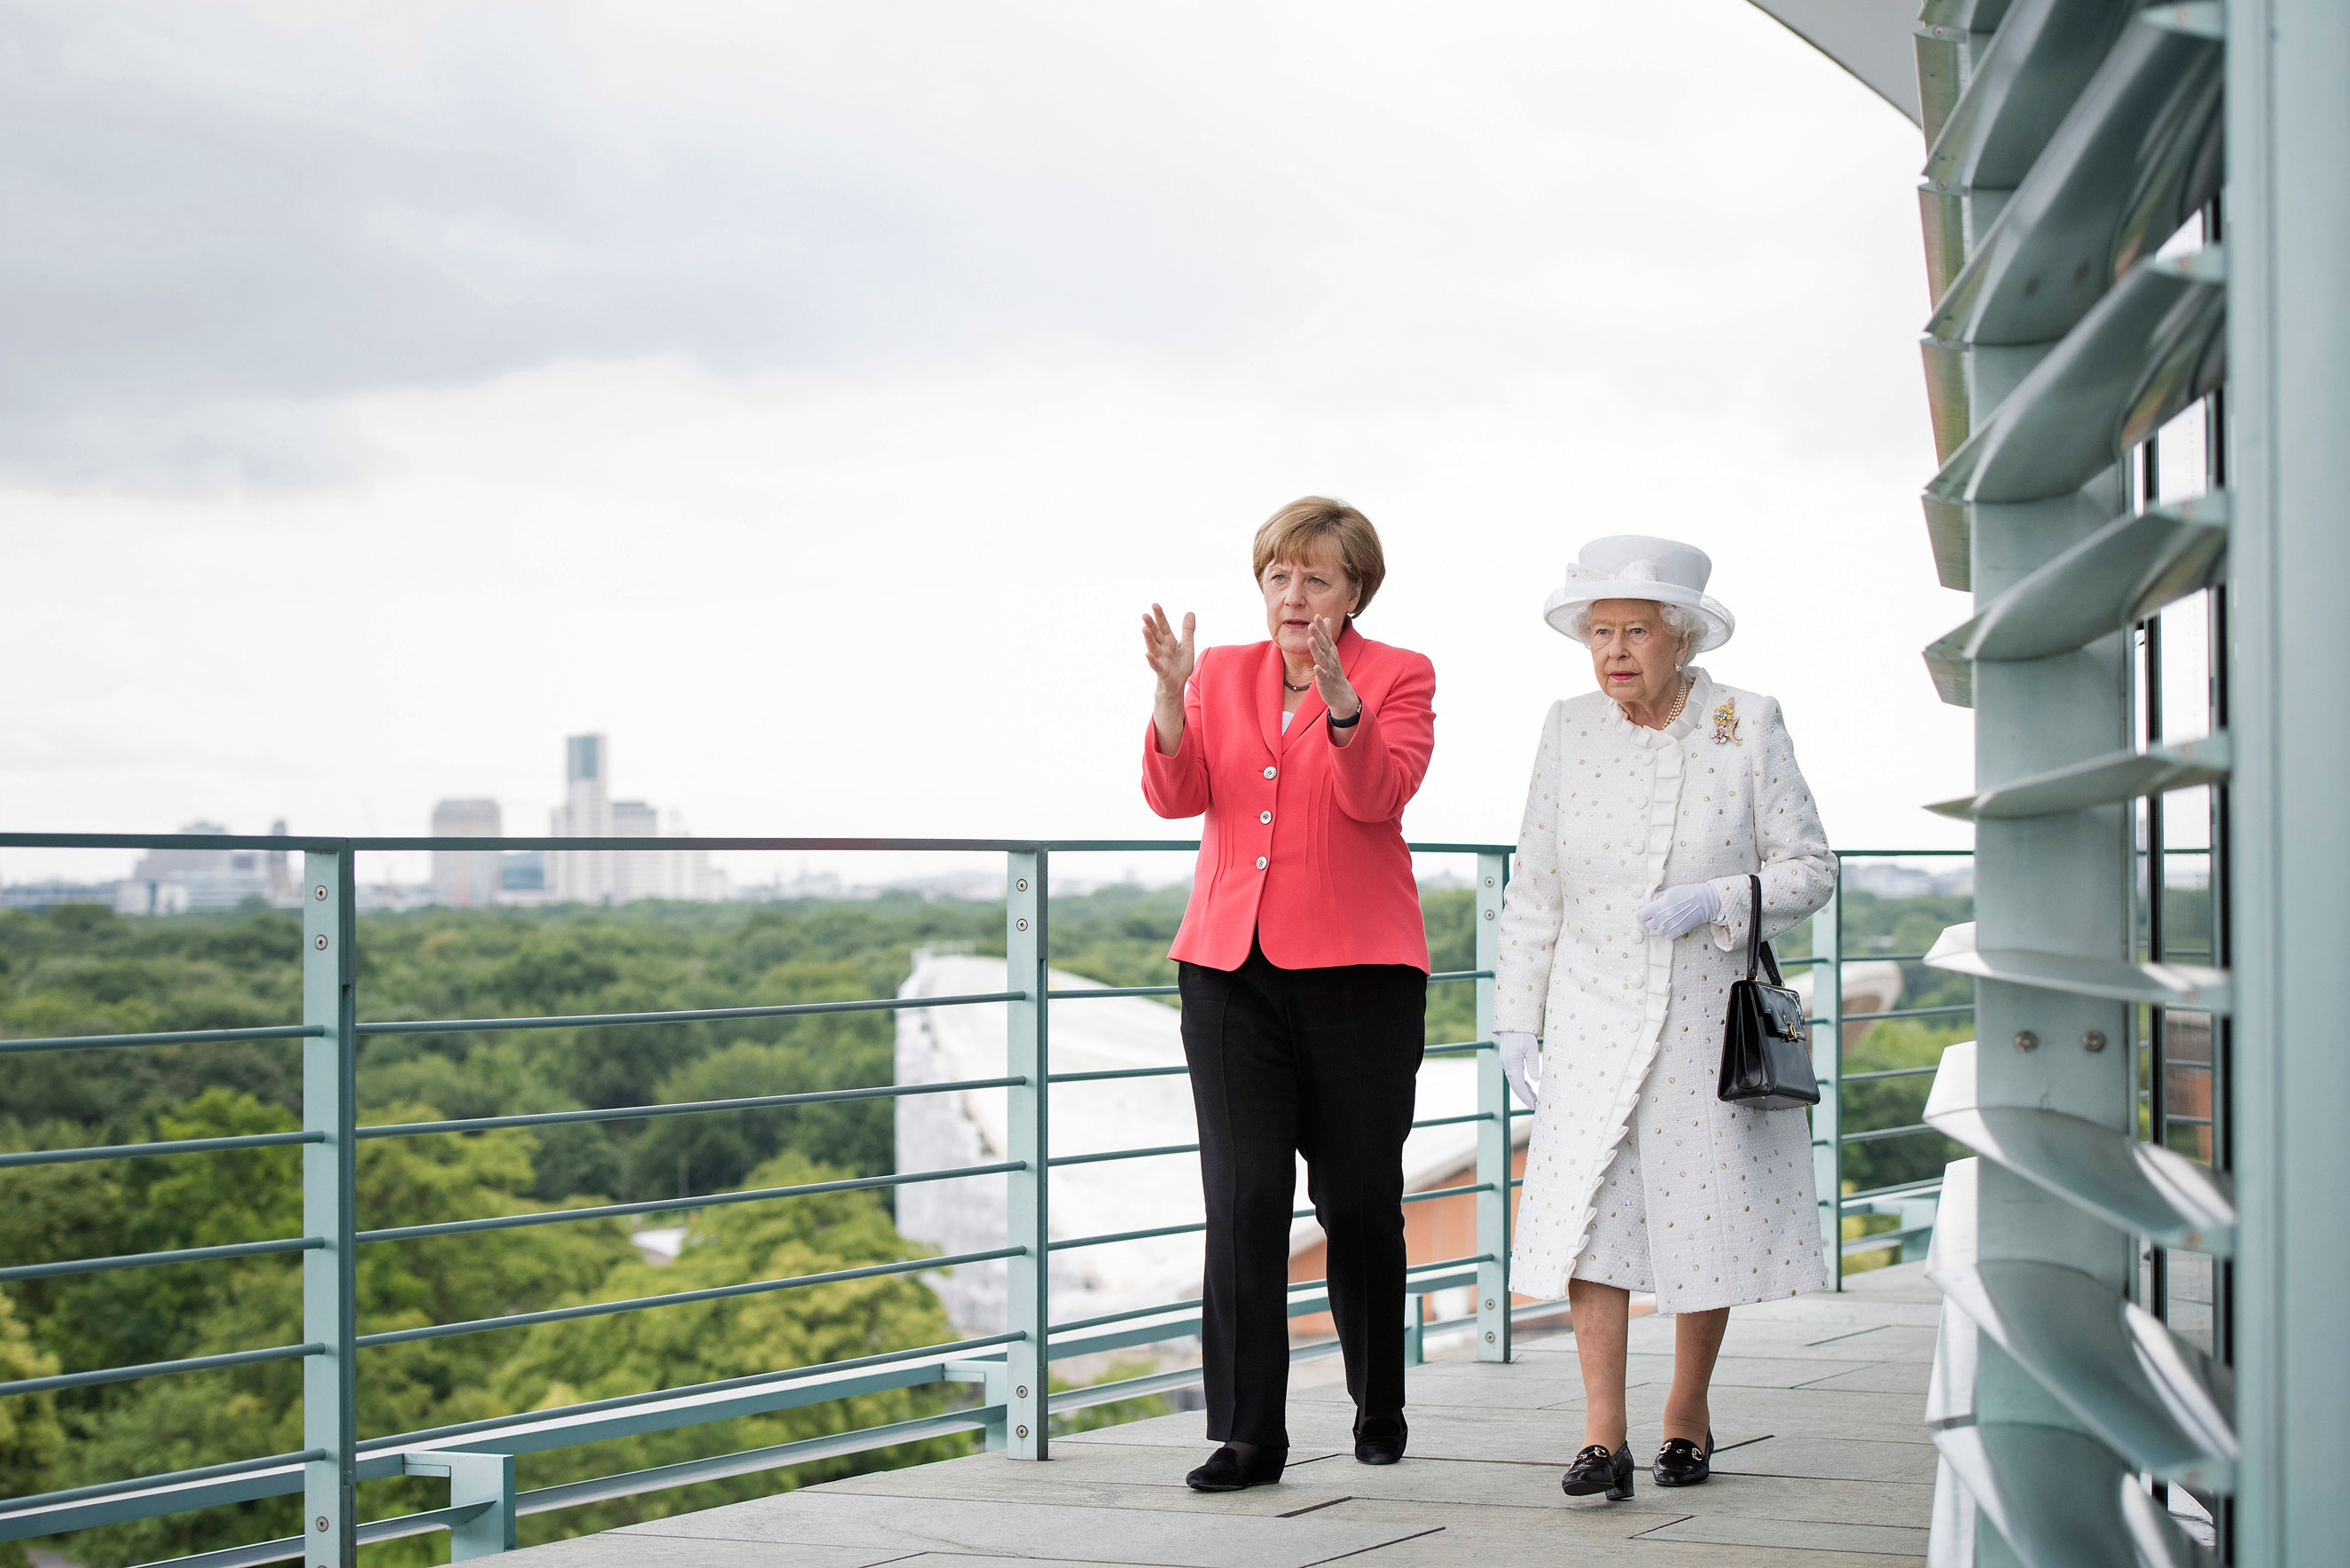 June: Chancellor Angela Merkel welcomes Queen Elizabeth II upon her arrival at the Federal Chancellery during the royal couple's four-day visit to Germany on June 24, 2015 in Berlin. The Queen and Prince Philip visited Berlin, Frankfurt and the concentration camp memorial at Bergen-Belsen during their first to Germany since 2004.